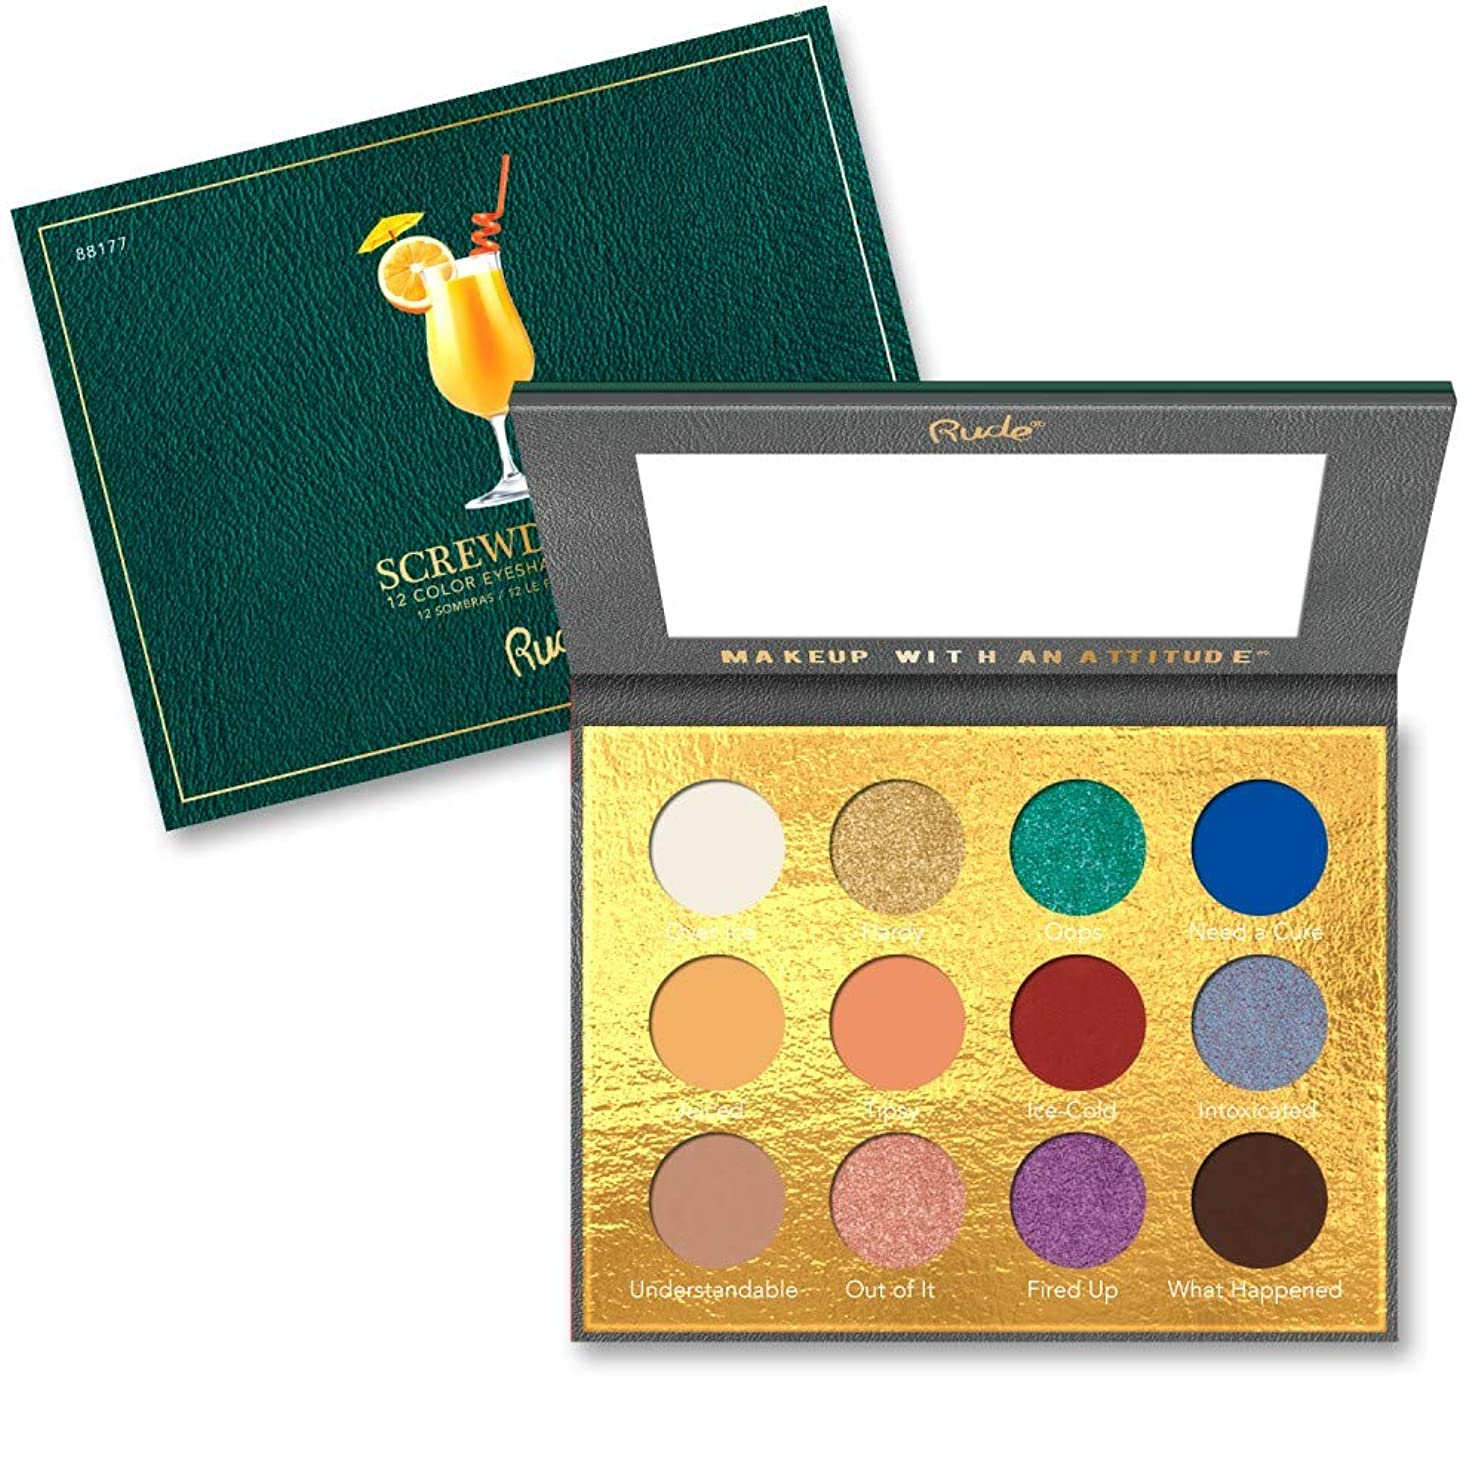 どれかイデオロギー名声RUDE? Cocktail Party 12 Color Eyeshadow Palette - Screwdriver (並行輸入品)